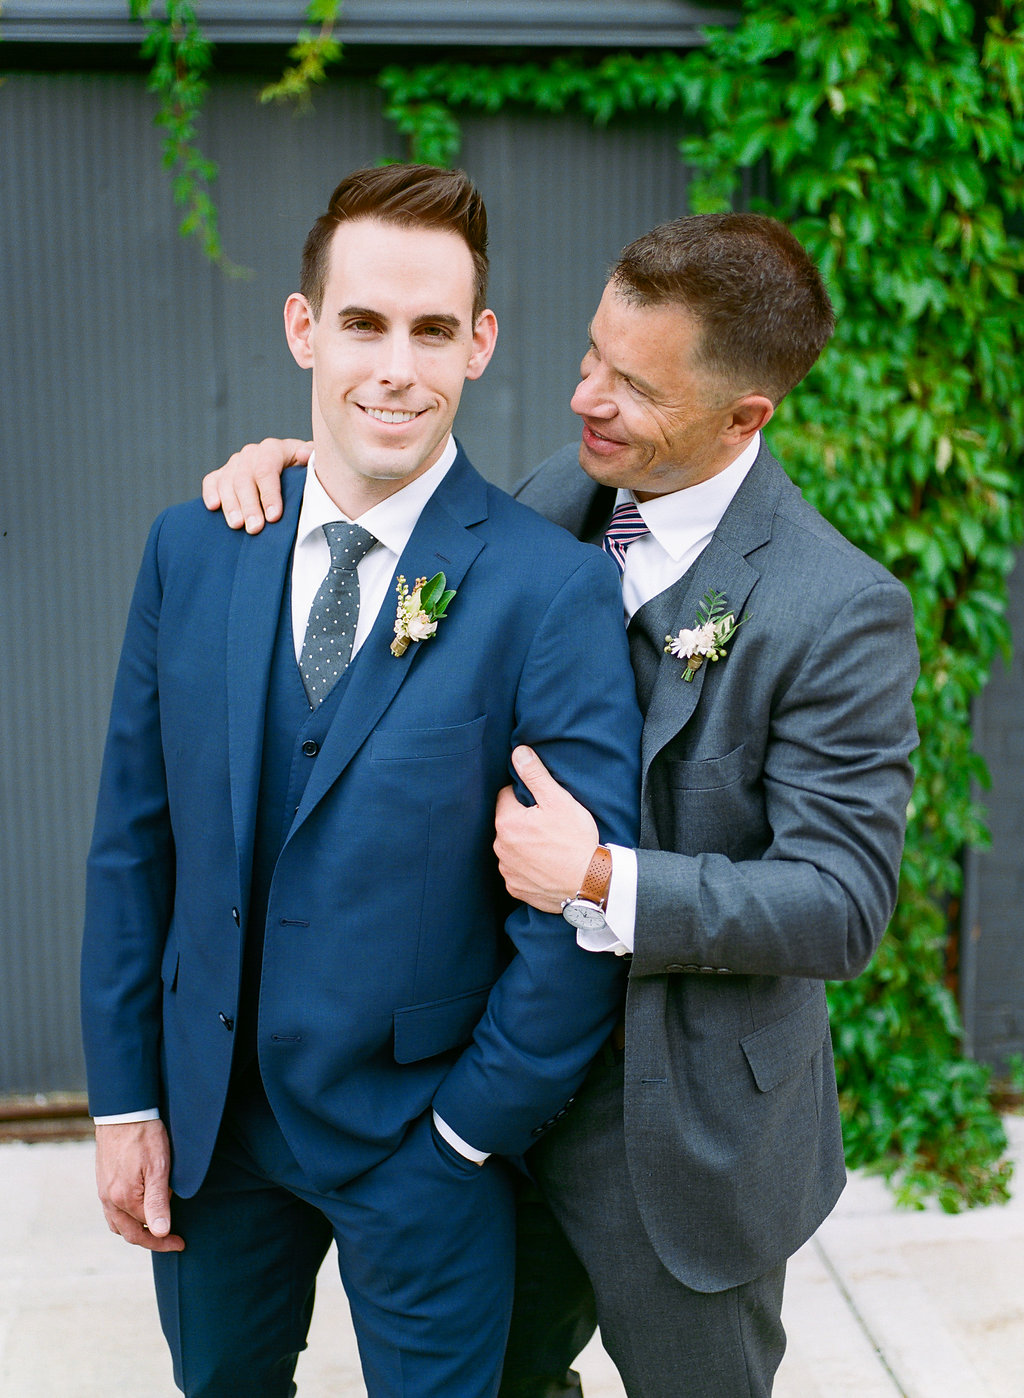 Carly Milbrath Photography | Justin and Jacob | PAIKKA Minnesota Wedding Venue | Same sex wedding with two grooms portrait | groom in navy suit | groom in gray suit | polka dot tie | stripe tie